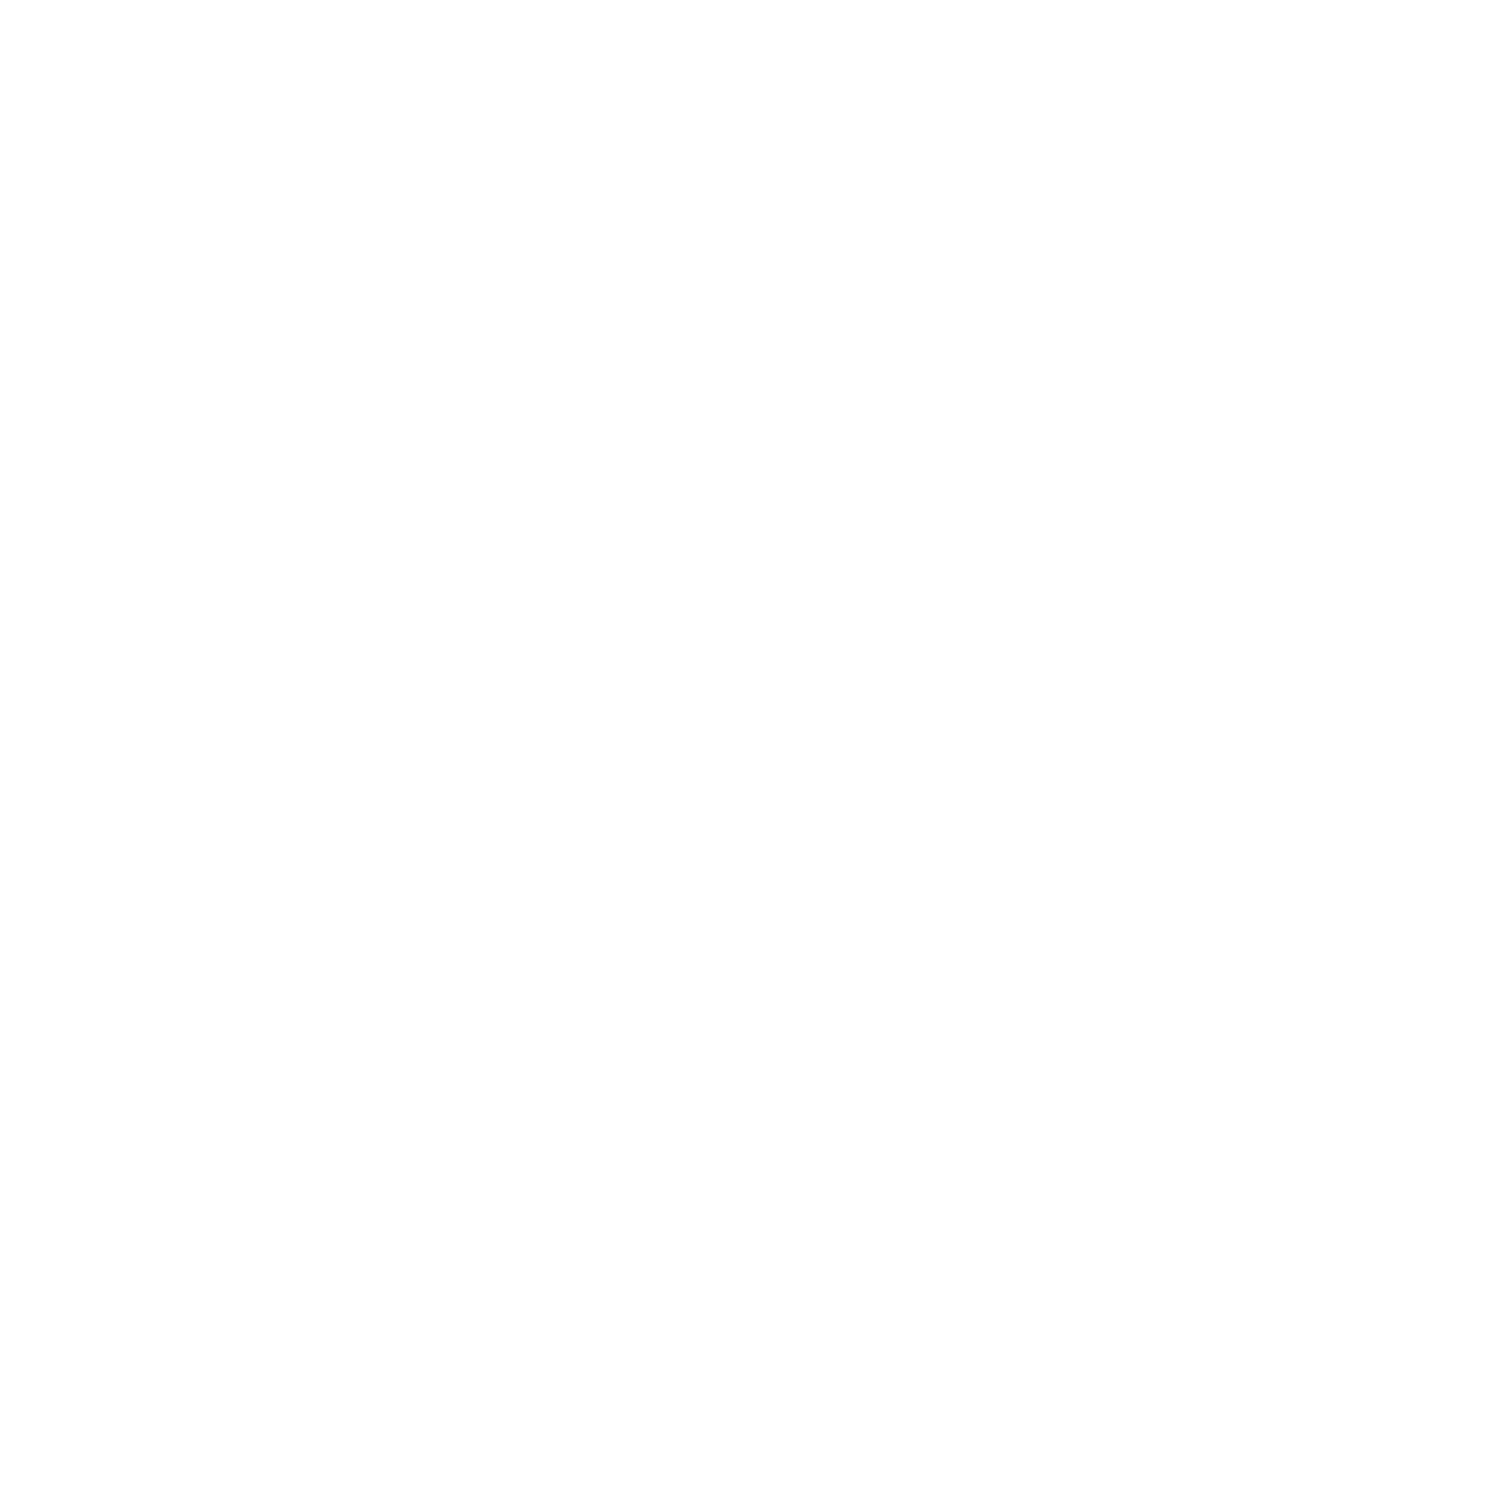 Mason Sandwich Co. | Eastchester Craft Sandwiches, Salads & Soups